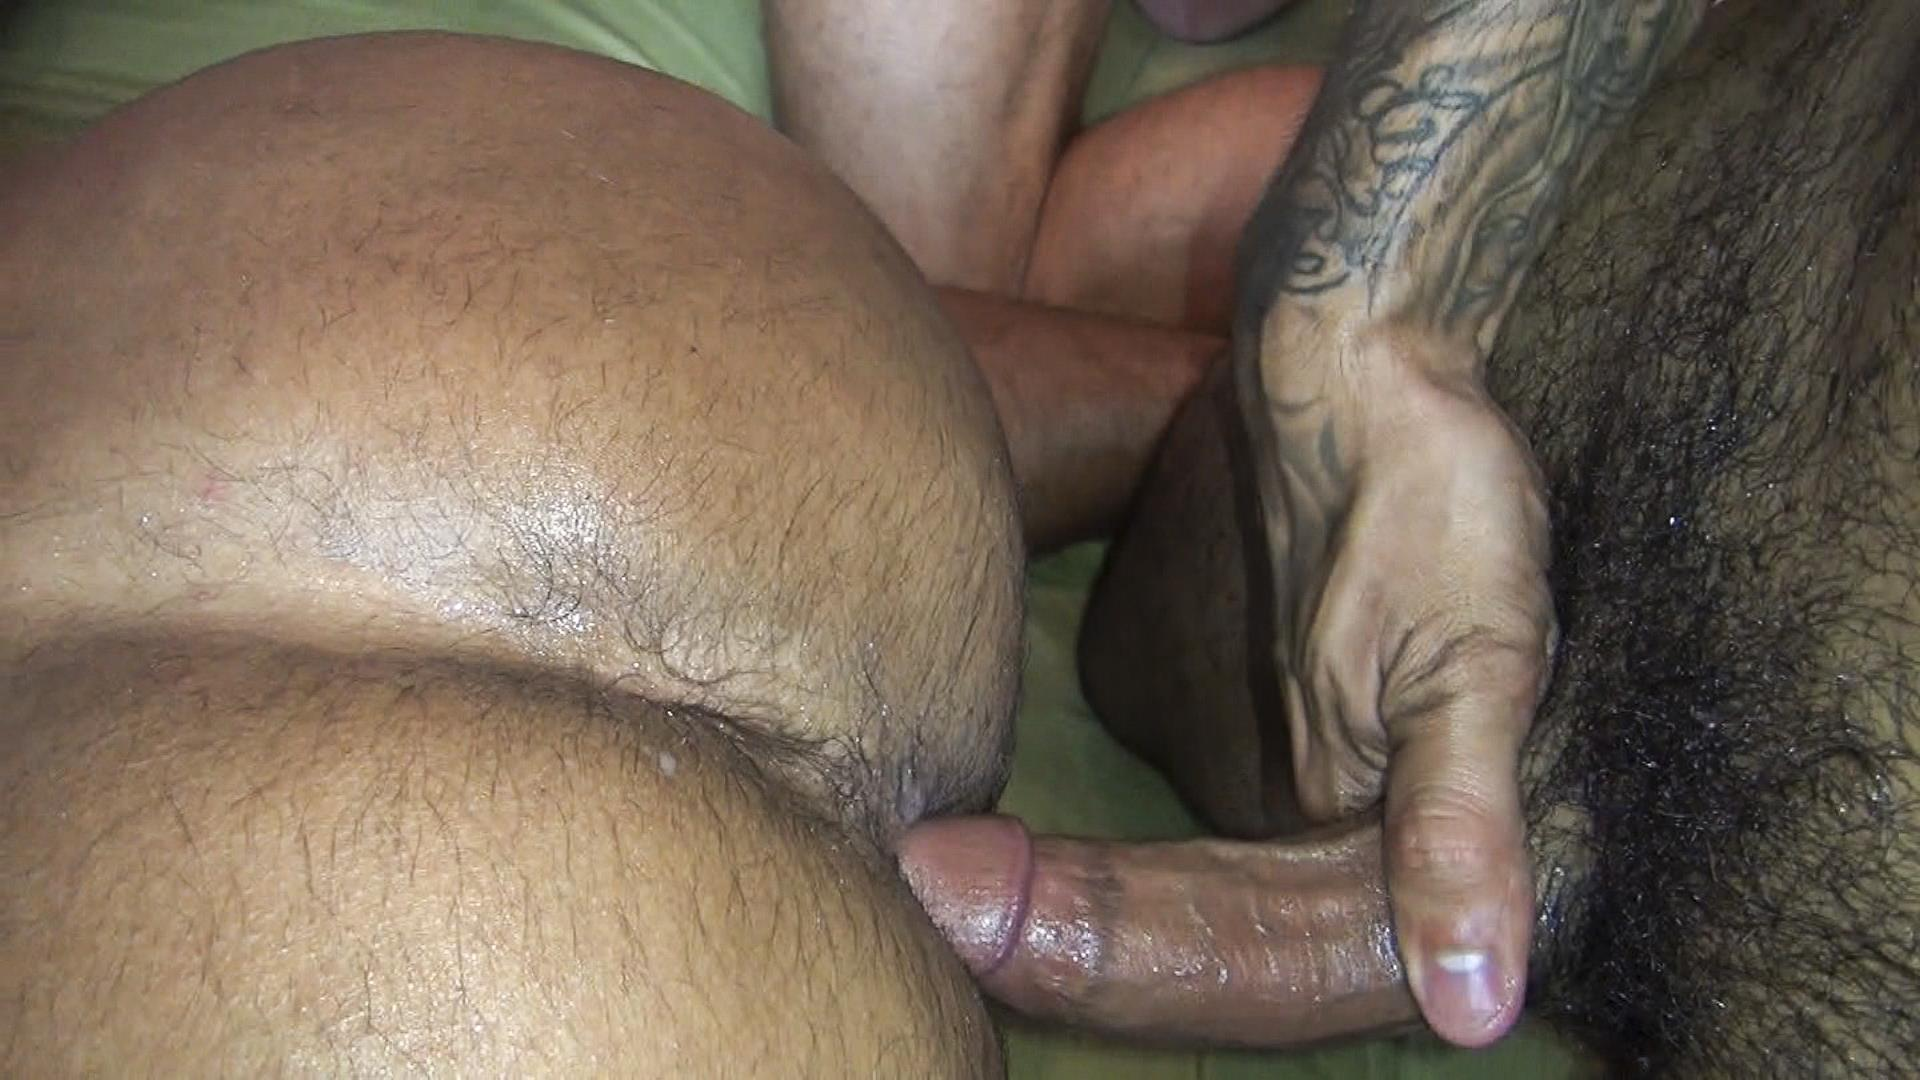 Raw-Fuck-Club-Vic-Rocco-and-Rikk-York-and-Billy-Warren-and-Job-Galt-Bareback-Daddy-Amateur-Gay-Porn-04 Four Hairy Muscle Daddies In A Bareback Fuck Fest Orgy